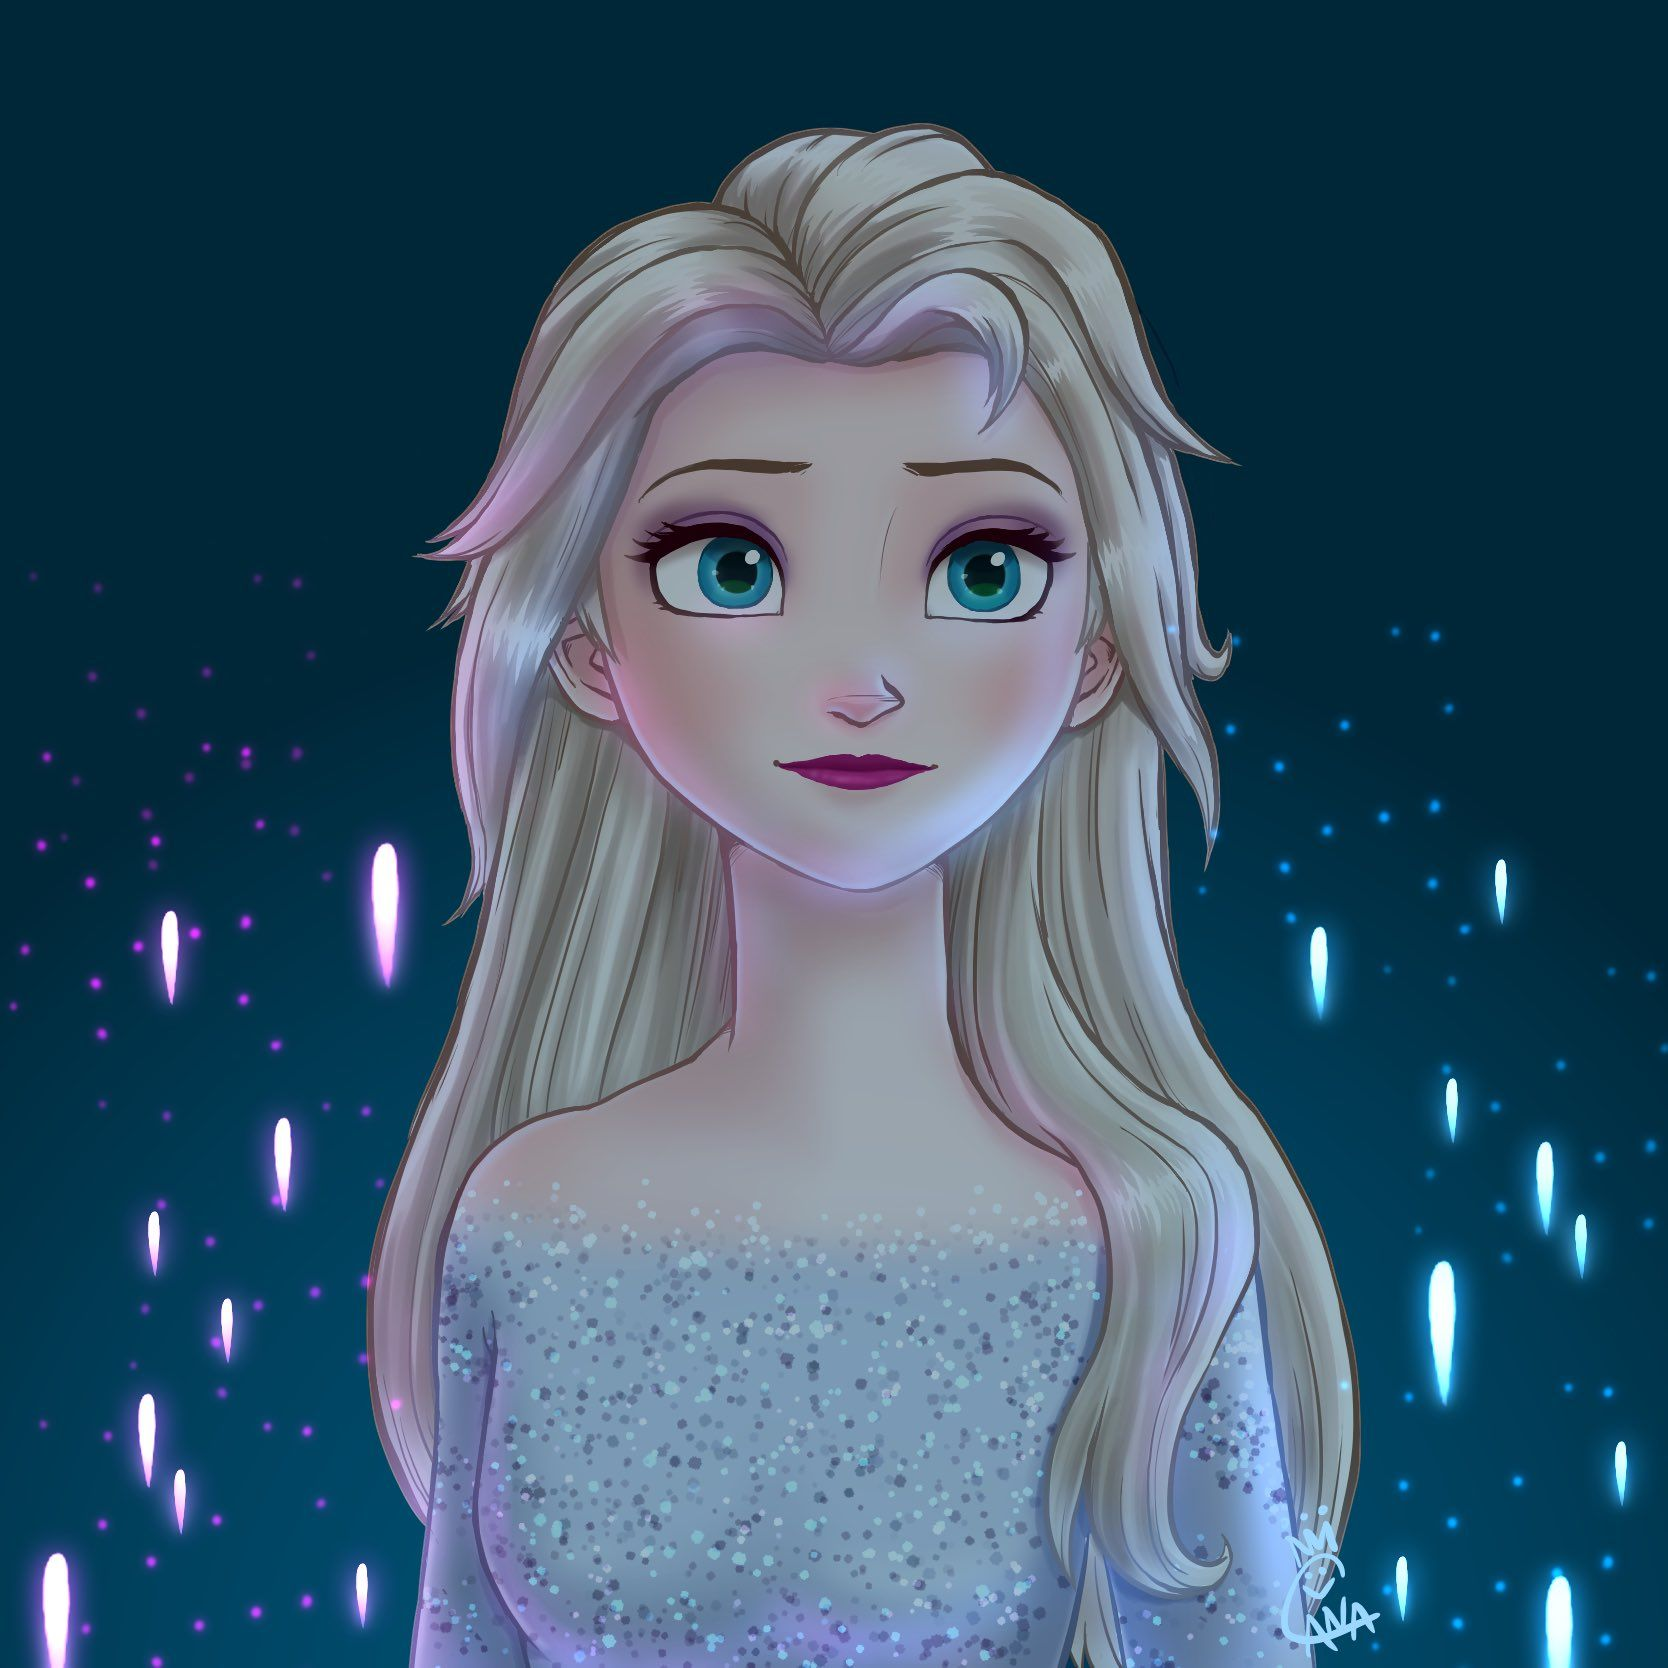 Fall In Love Dress Elsa Disney Frozen 2 New Look In 2020 Disney Princess Elsa Disney Princess Frozen Disney Frozen Elsa